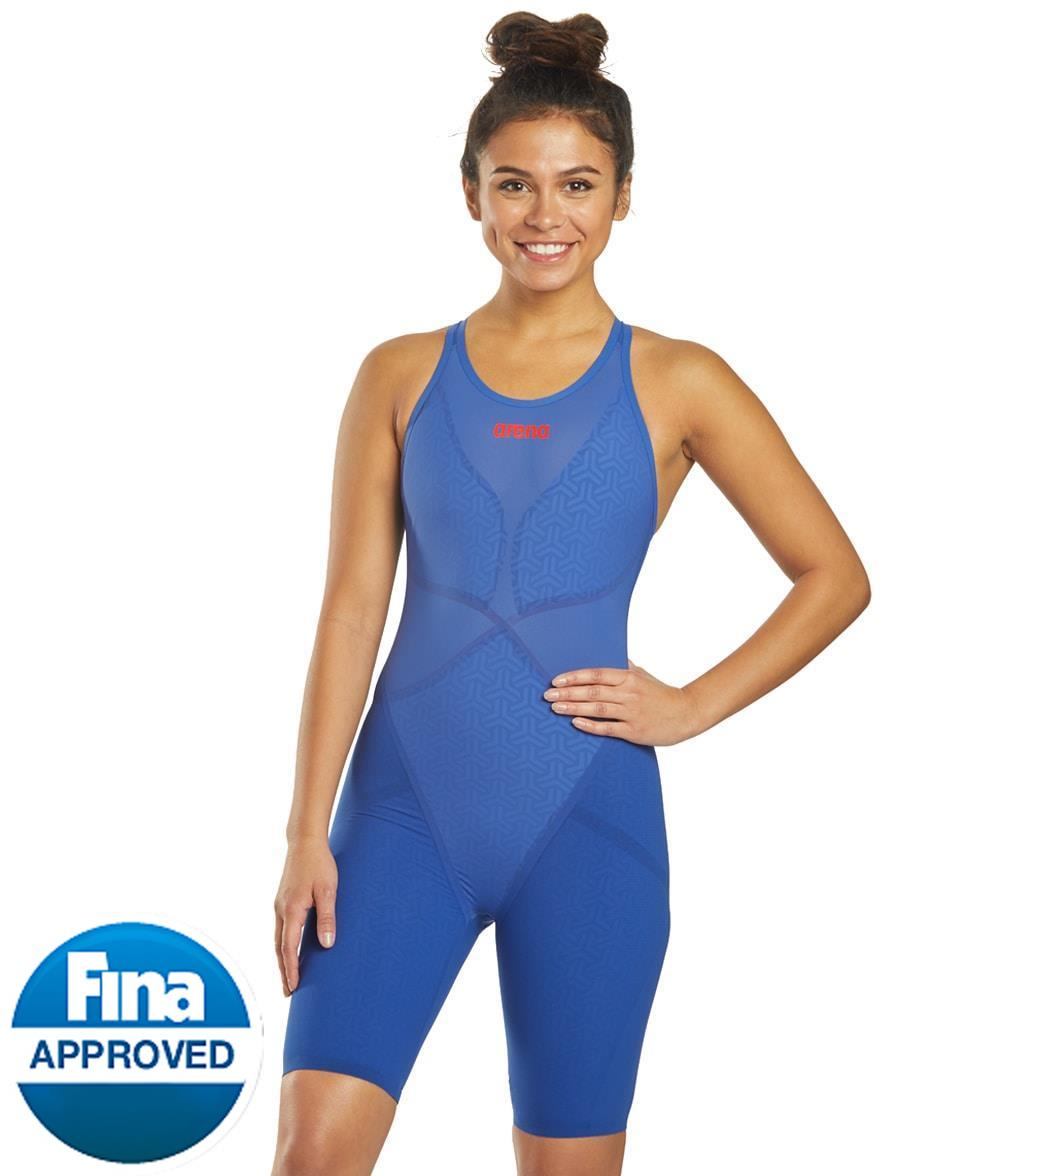 Arena Women's Powerskin Carbon Glide Distance Tech Suit Swimsuit